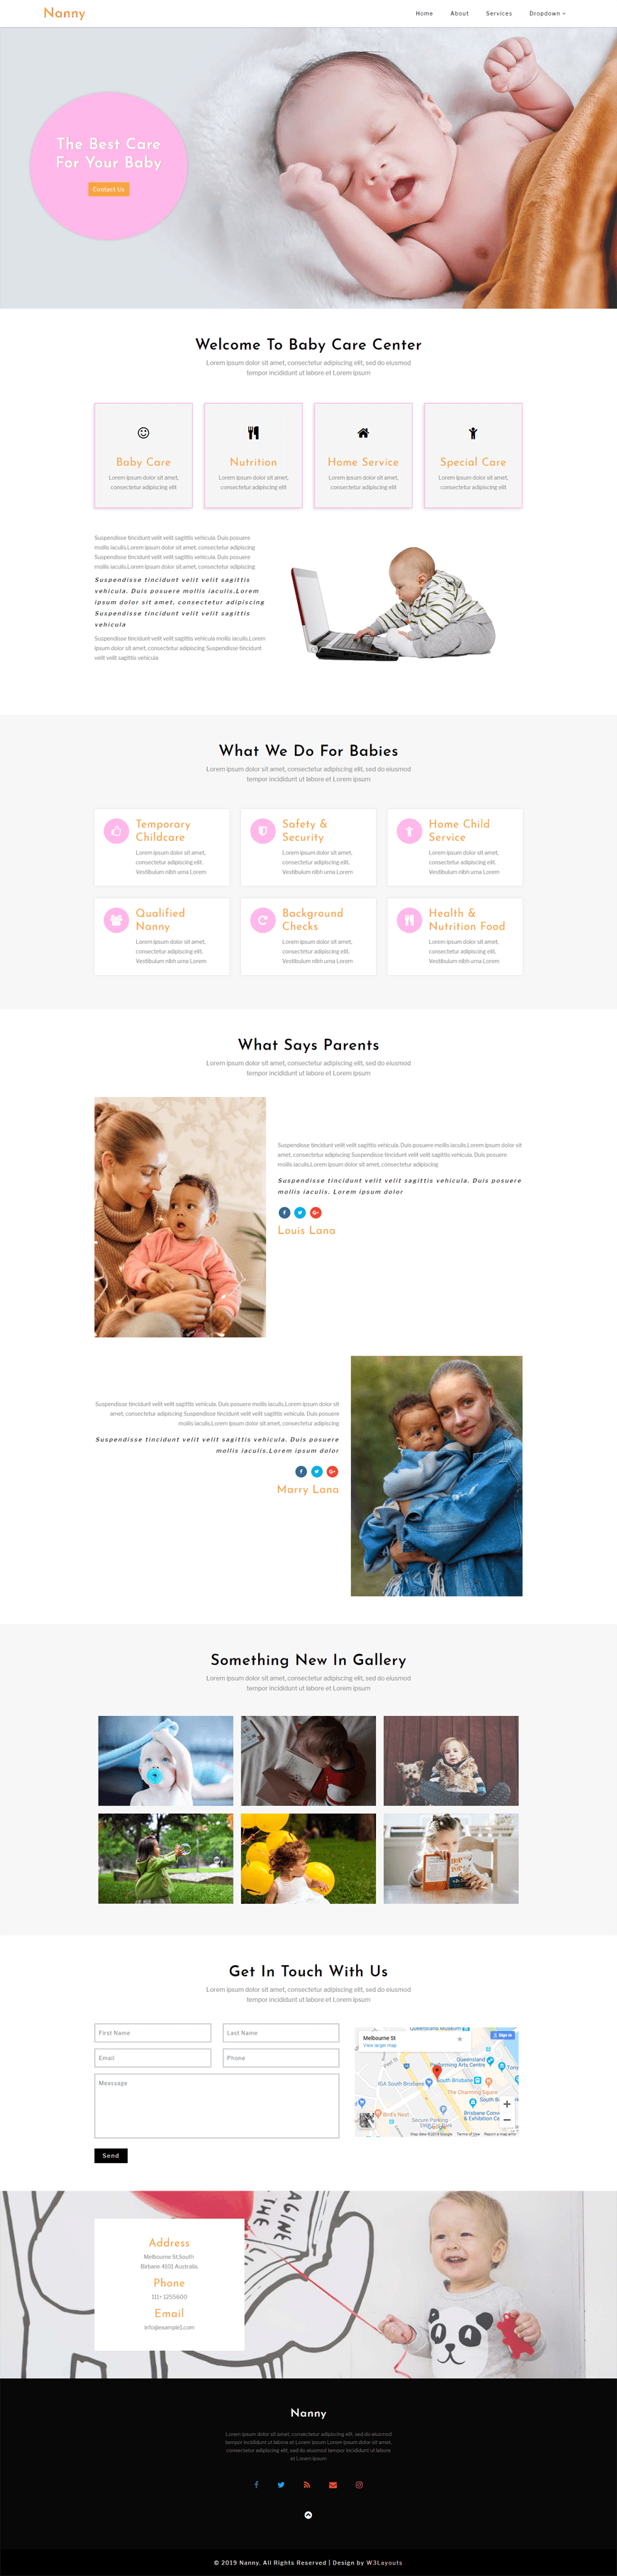 Nanny, a Society & People category website template designed for child care websites.